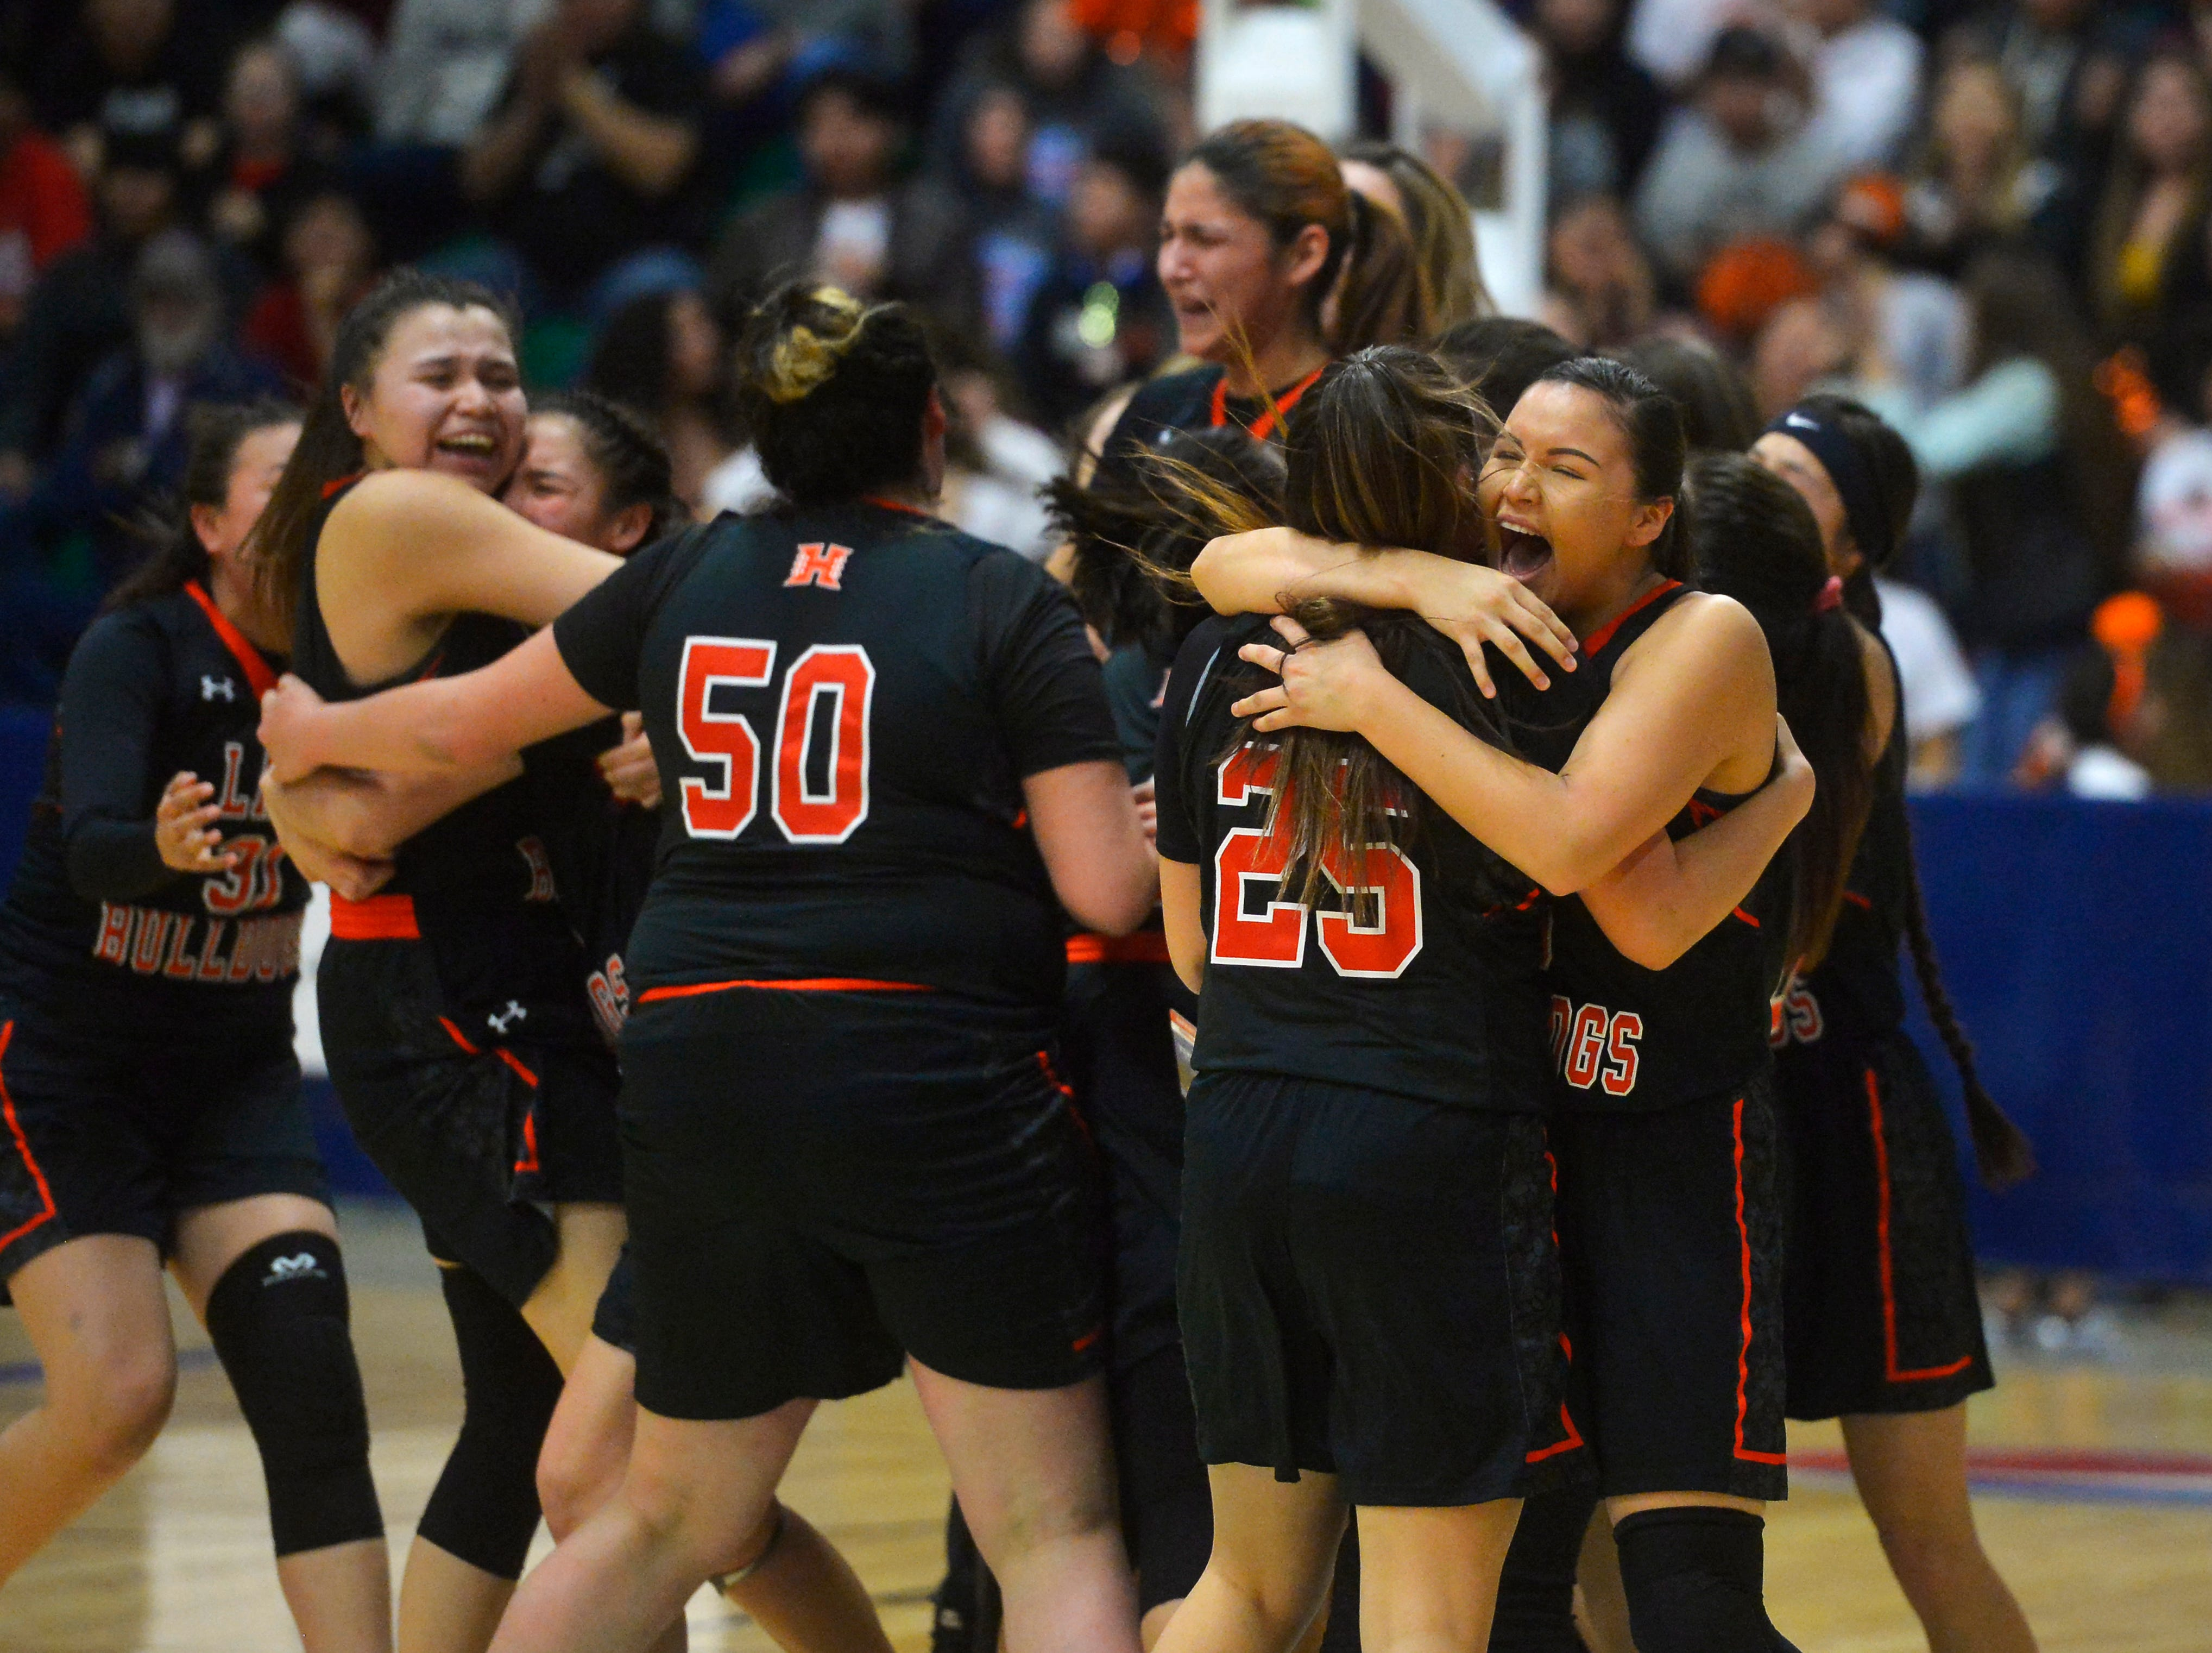 The Hardin girls celebrate their semifinal victory over Billings Central in the semifinal game of the State Class A Basketball Tournament in the Four Seasons Arena, Friday.